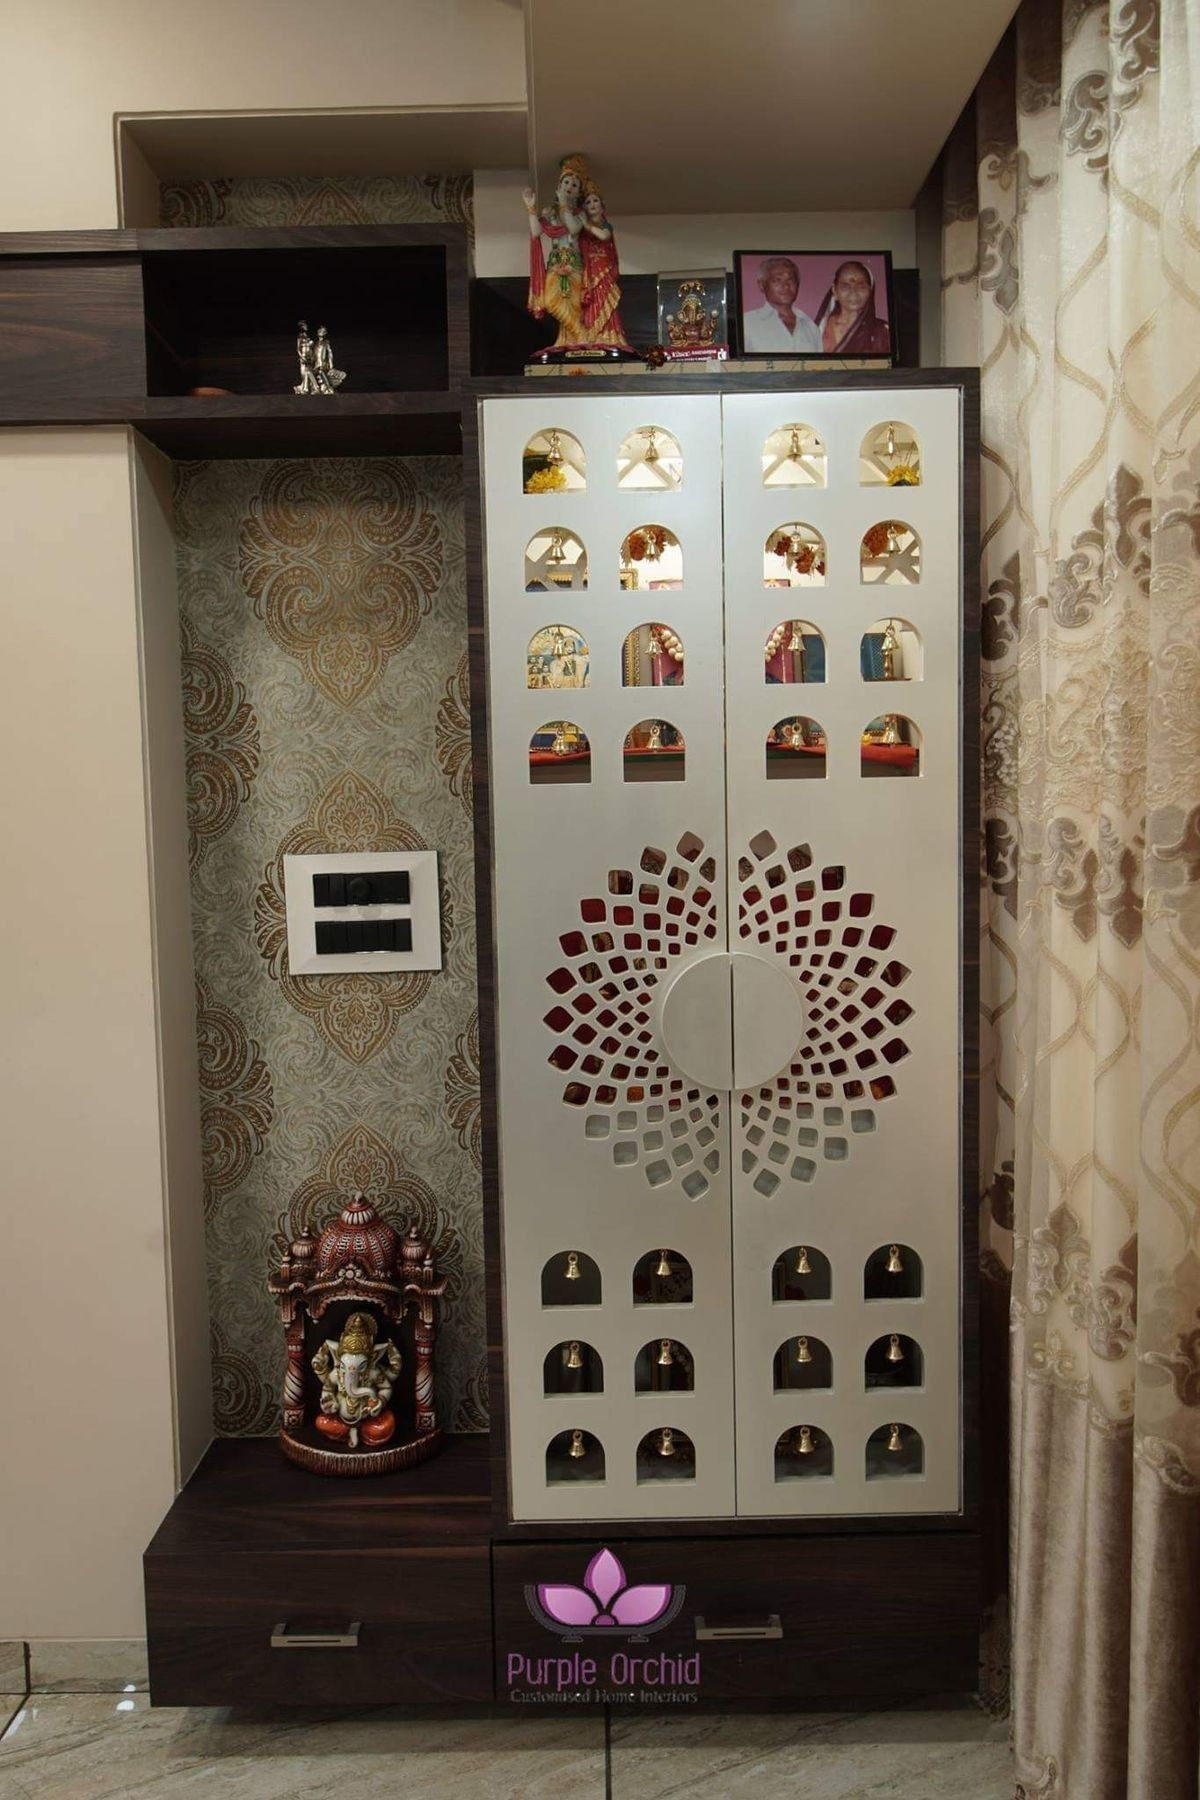 40 Door Design For Mandir Important Ideas: Pin By Soumita Parui On Decor (With Images)